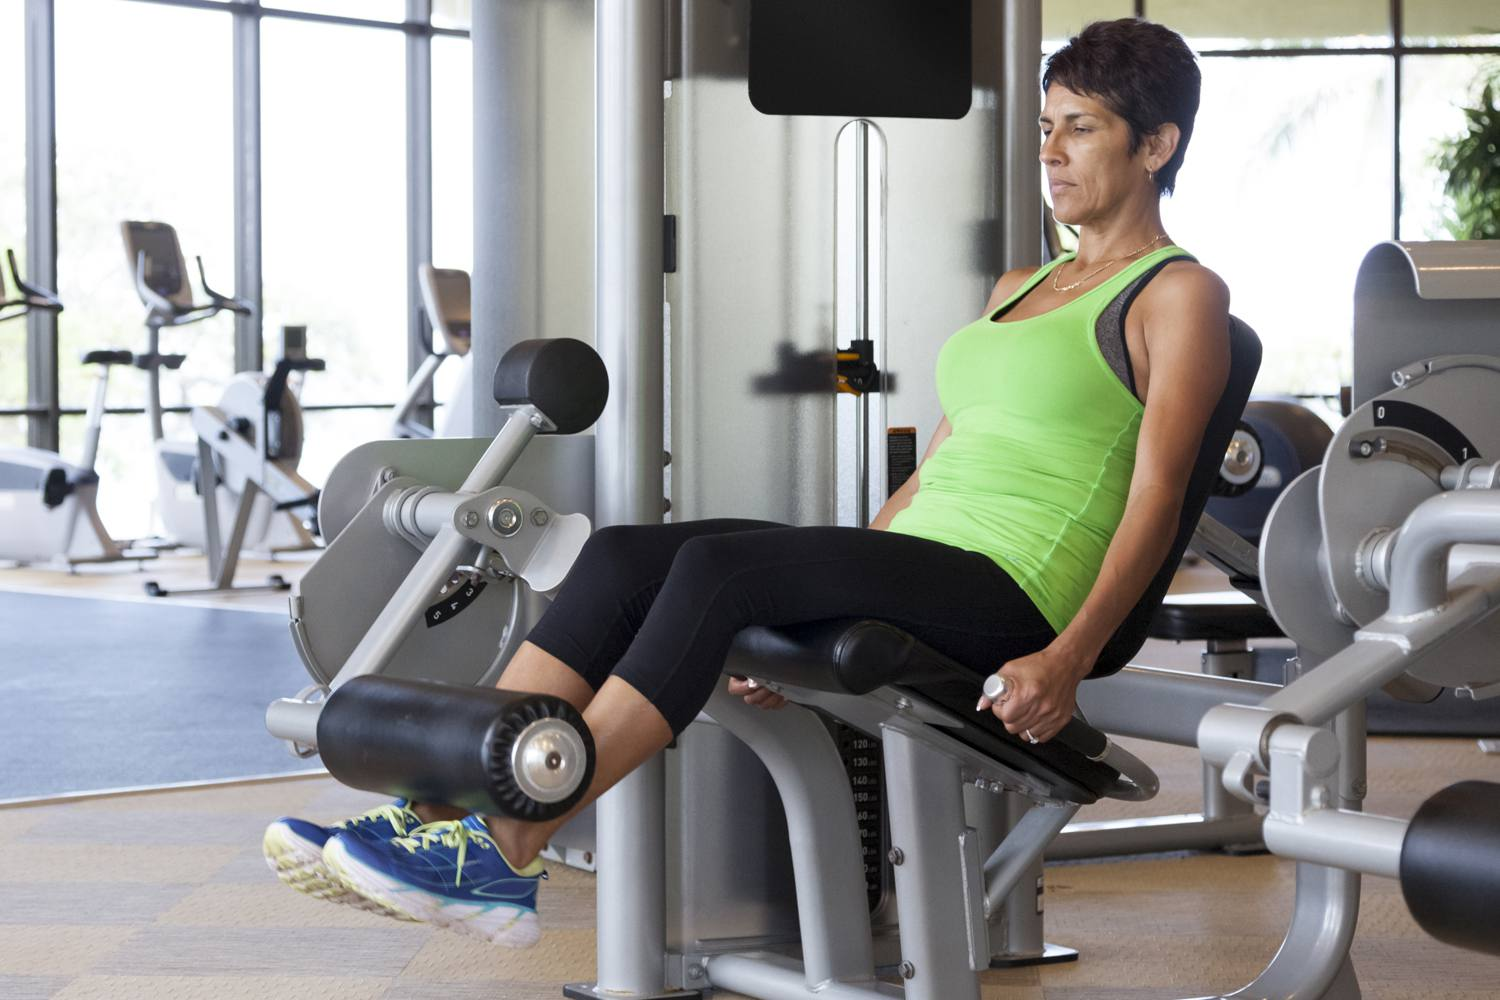 How To Do The Leg Extension Exercise For The Thighs